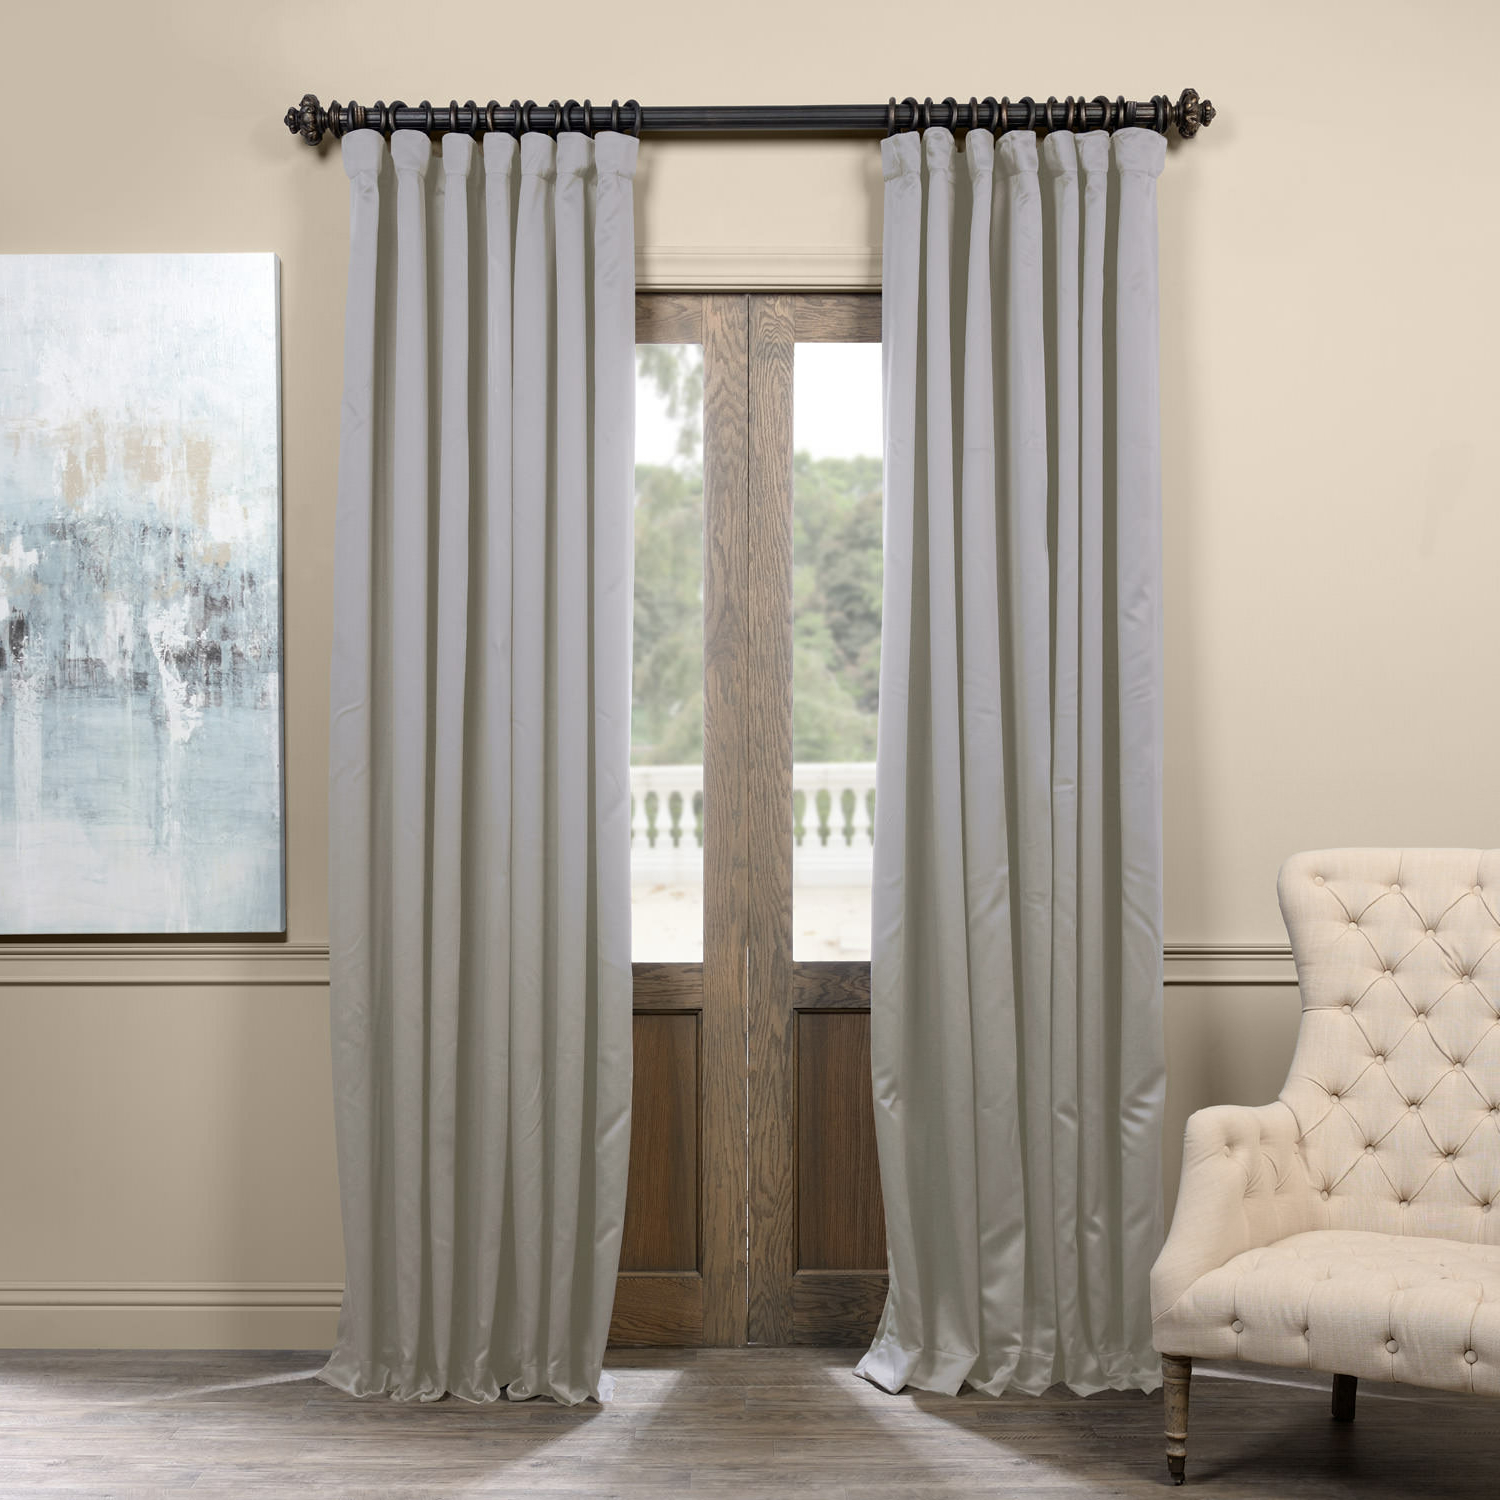 Fashionable Aldreda Extra Wide Solid Blackout Thermal Rod Pocket Single Curtain Panel Throughout Faux Silk Extra Wide Blackout Single Curtain Panels (View 15 of 20)